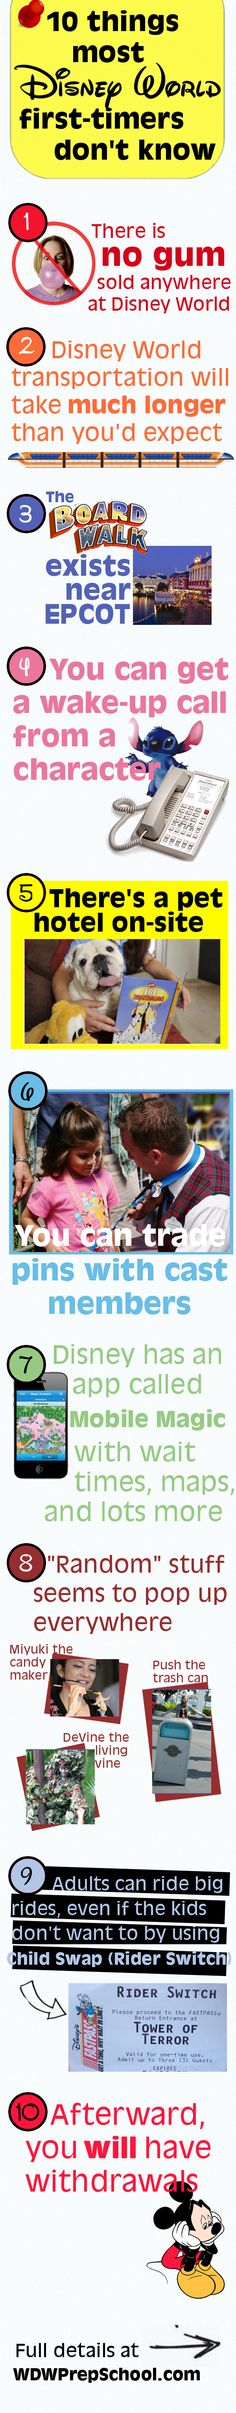 ESPECIALLY #10-- 10 things most Disney World first-timers don't know. More info at WDWPrepSchool.com